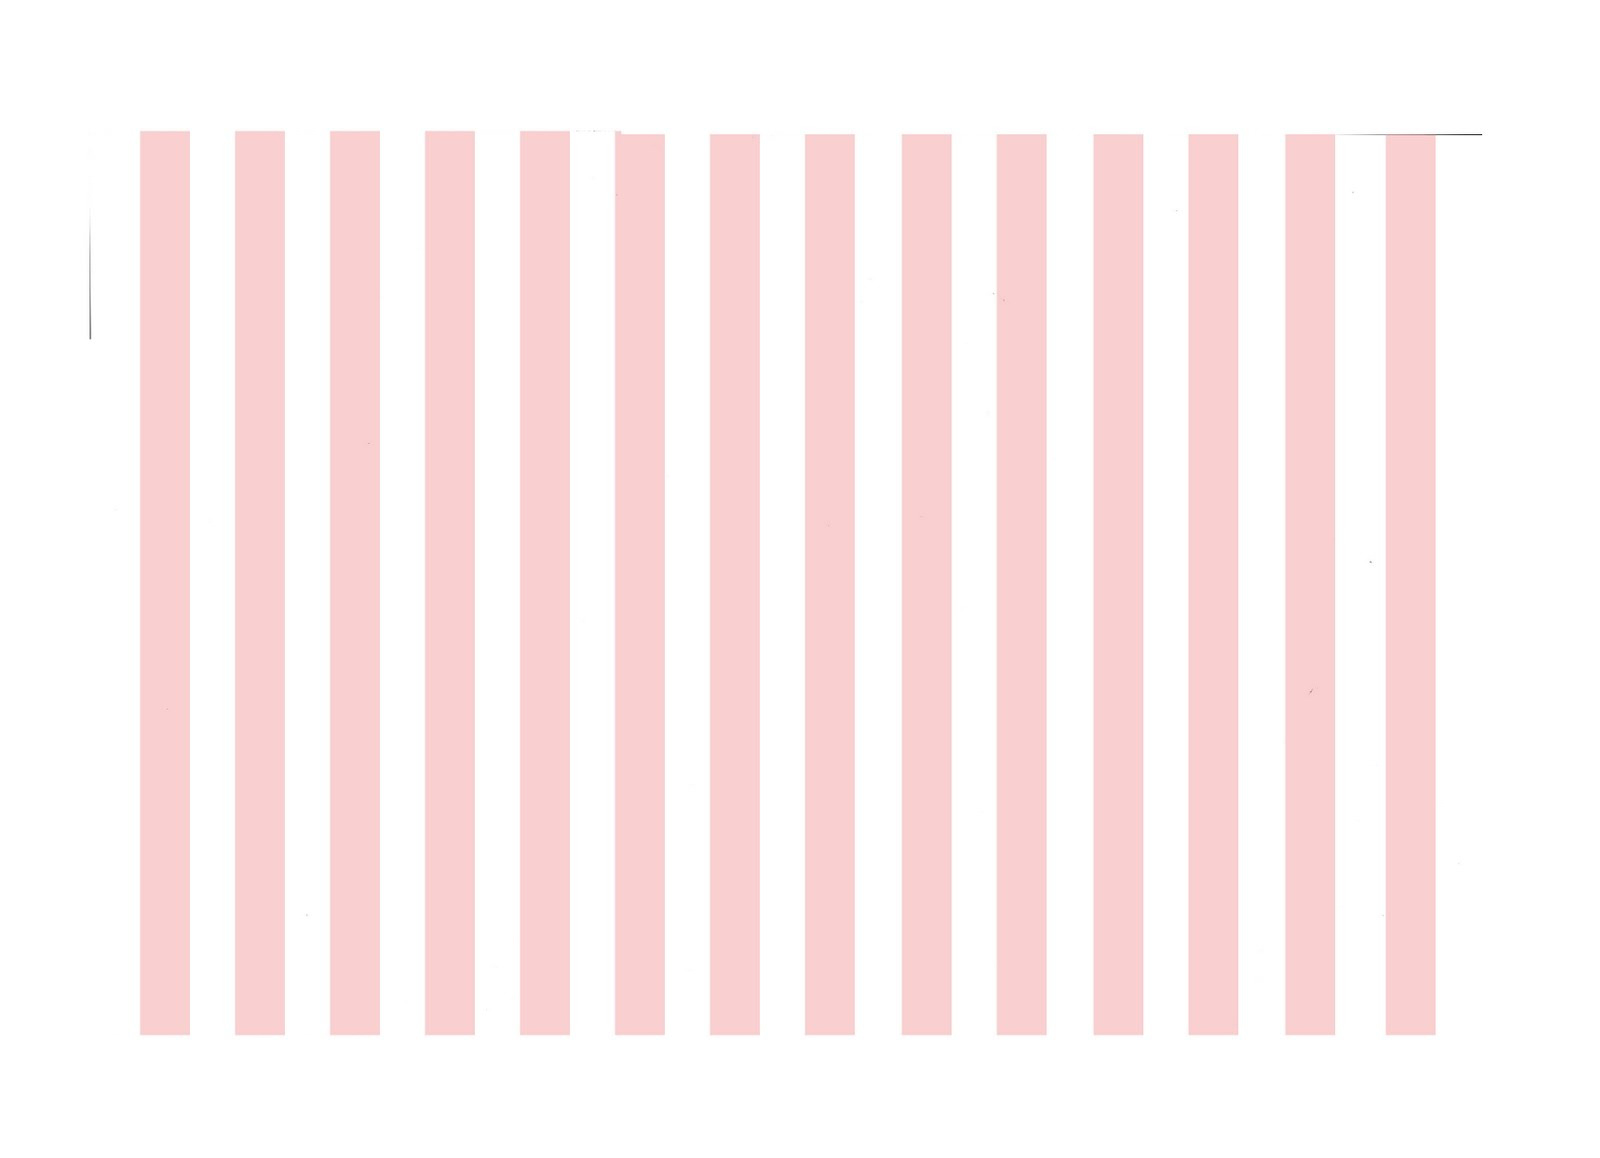 Pink And White Striped Gallery 528099012 Wallpaper For Free